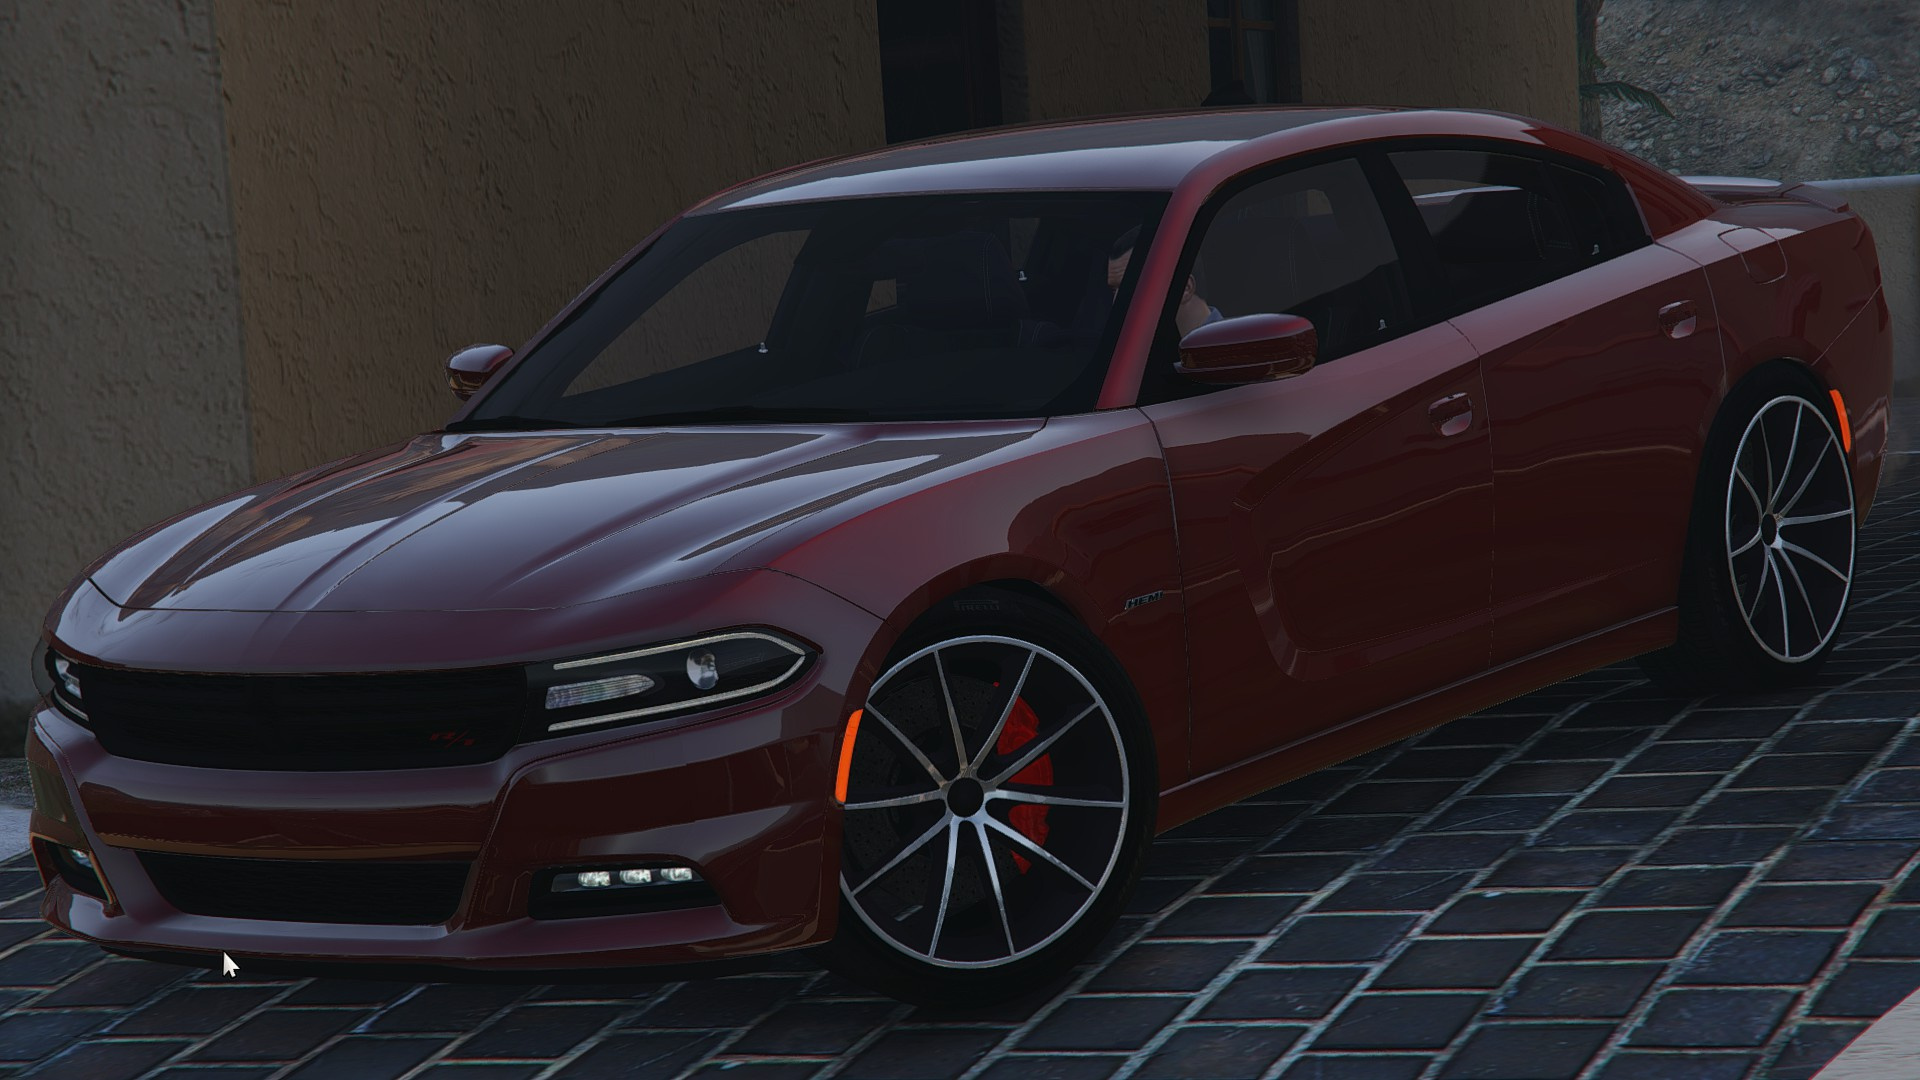 2015 dodge charger rt - gta5-mods